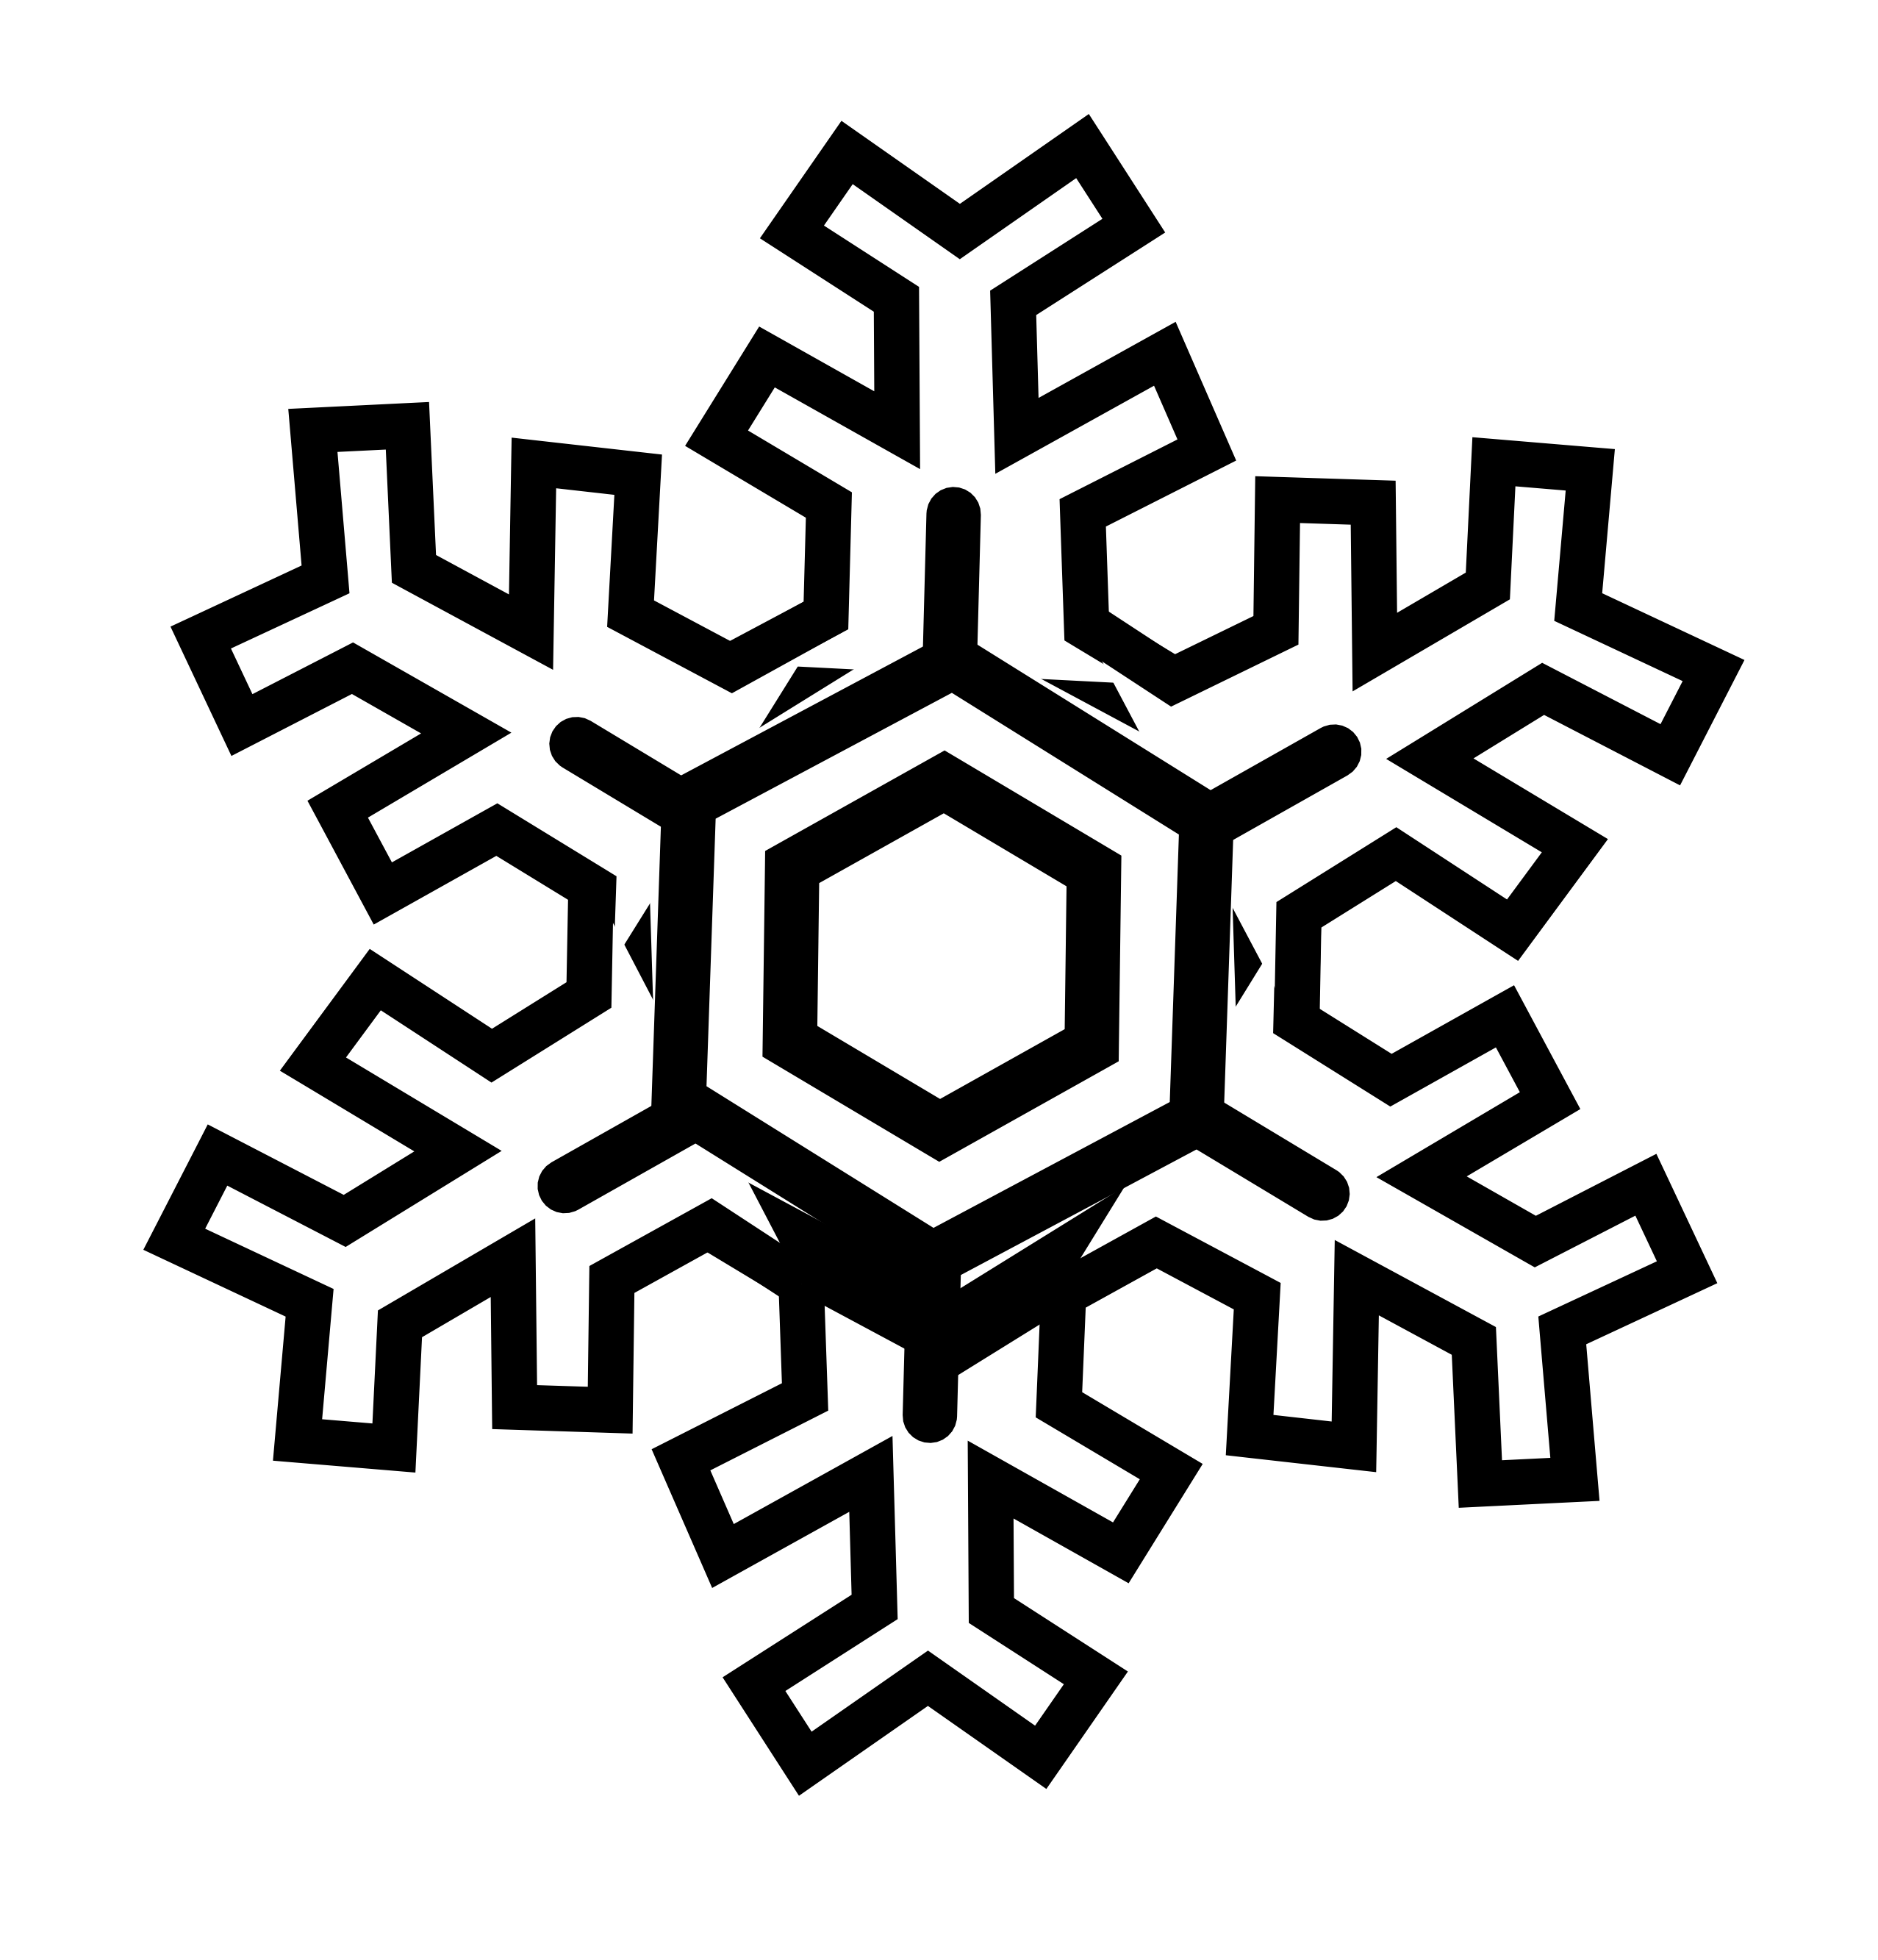 Snowflake art clipart banner royalty free download Snowflake Clipart Black And White | Clipart Panda - Free Clipart Images banner royalty free download